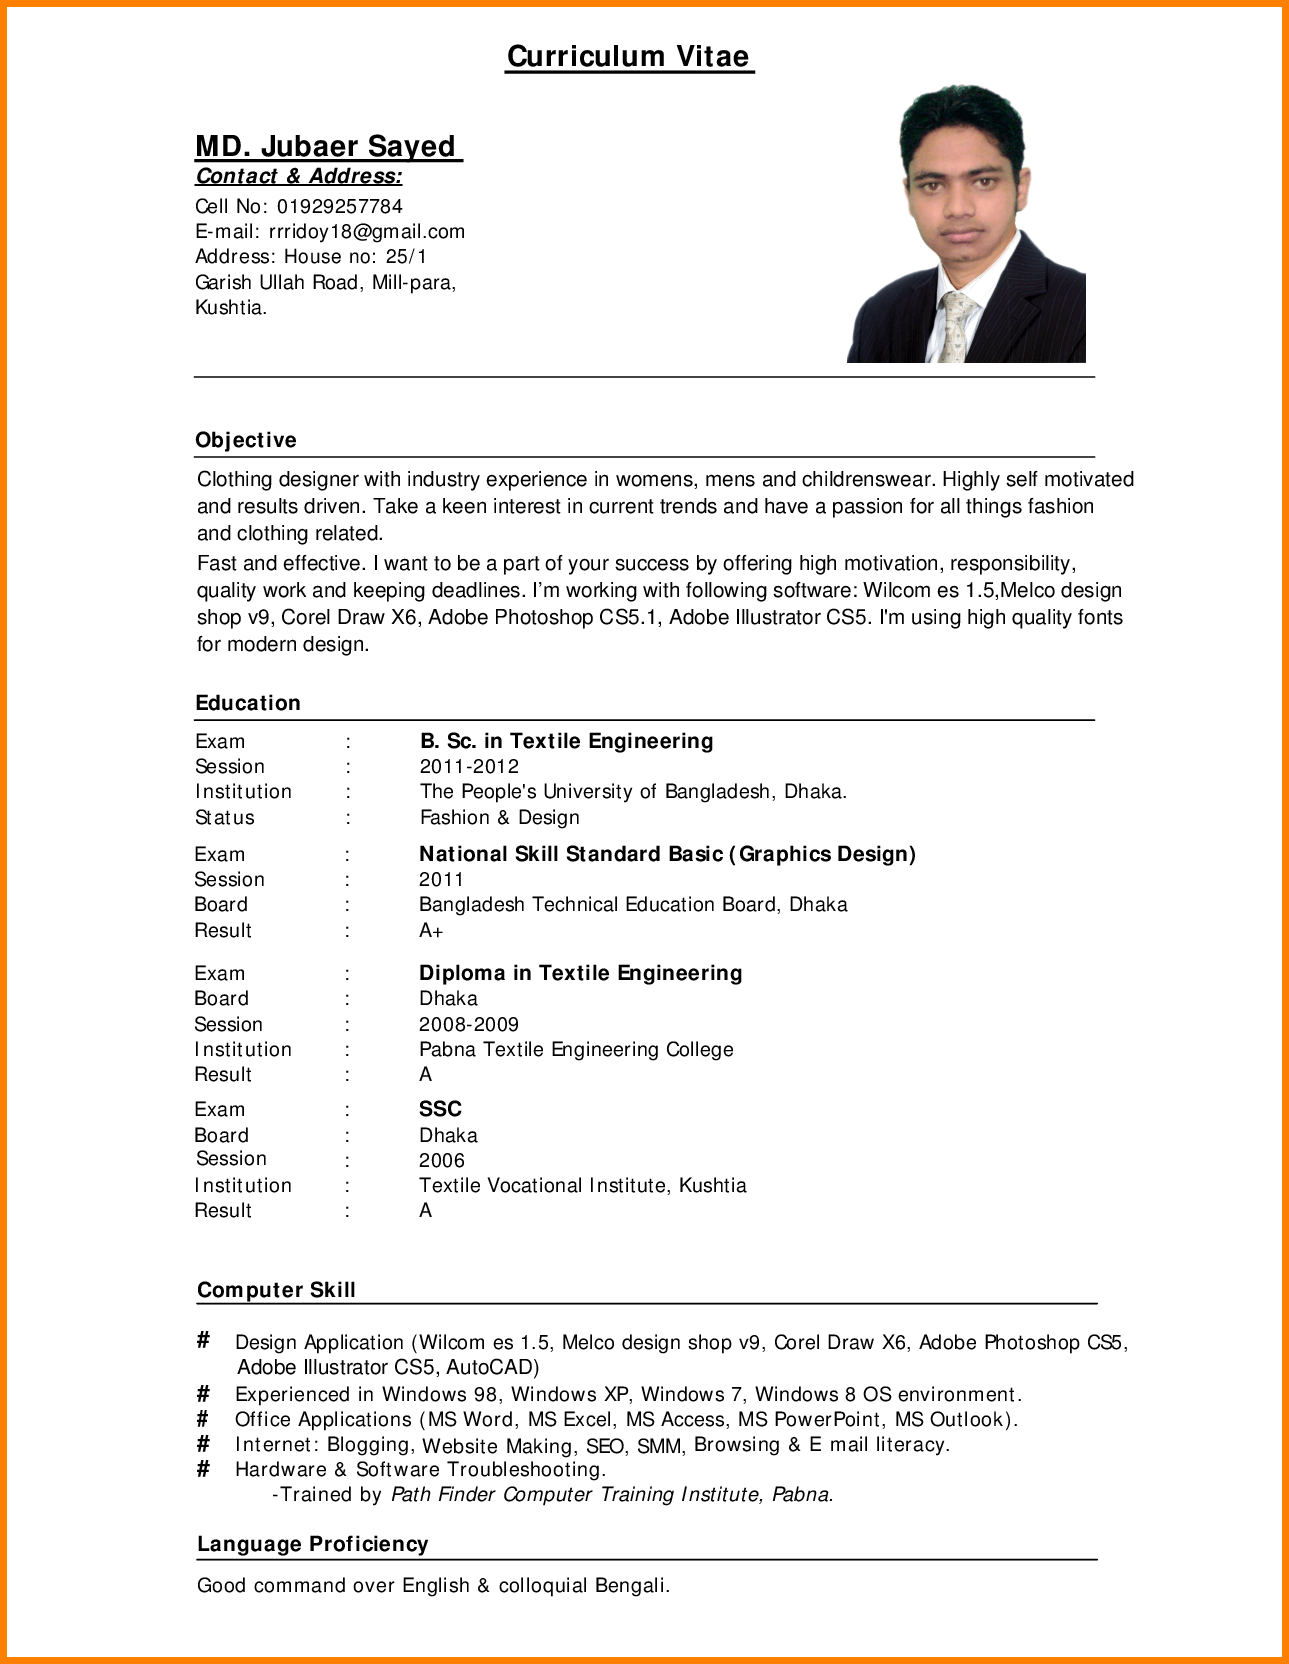 sample pdfputer skills and education for curriculum vitae